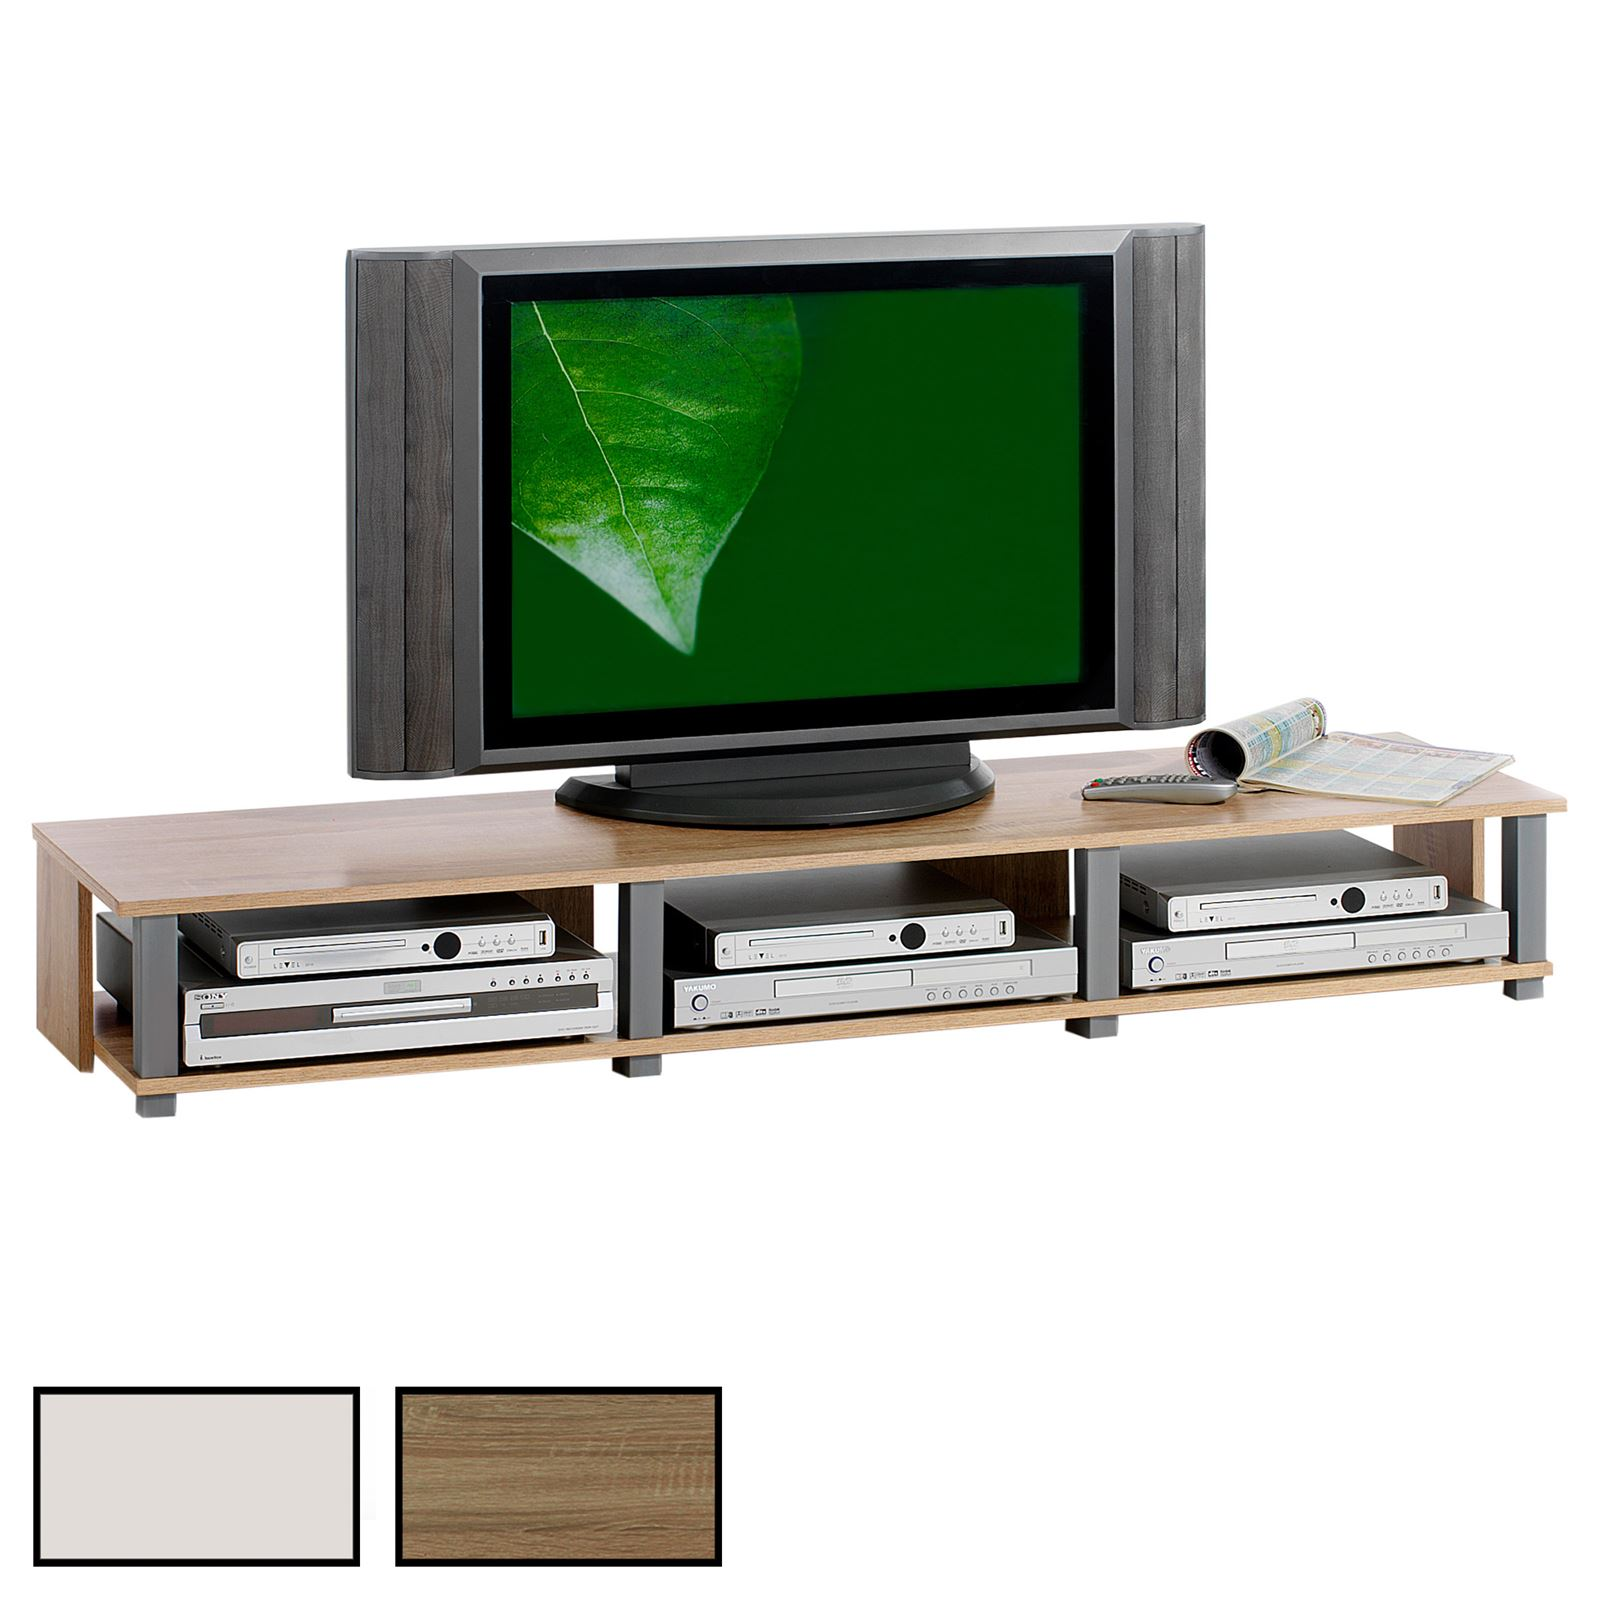 Meuble tv kimi 3 niches 2 coloris disponibles mobil for Meuble tv 3 niches